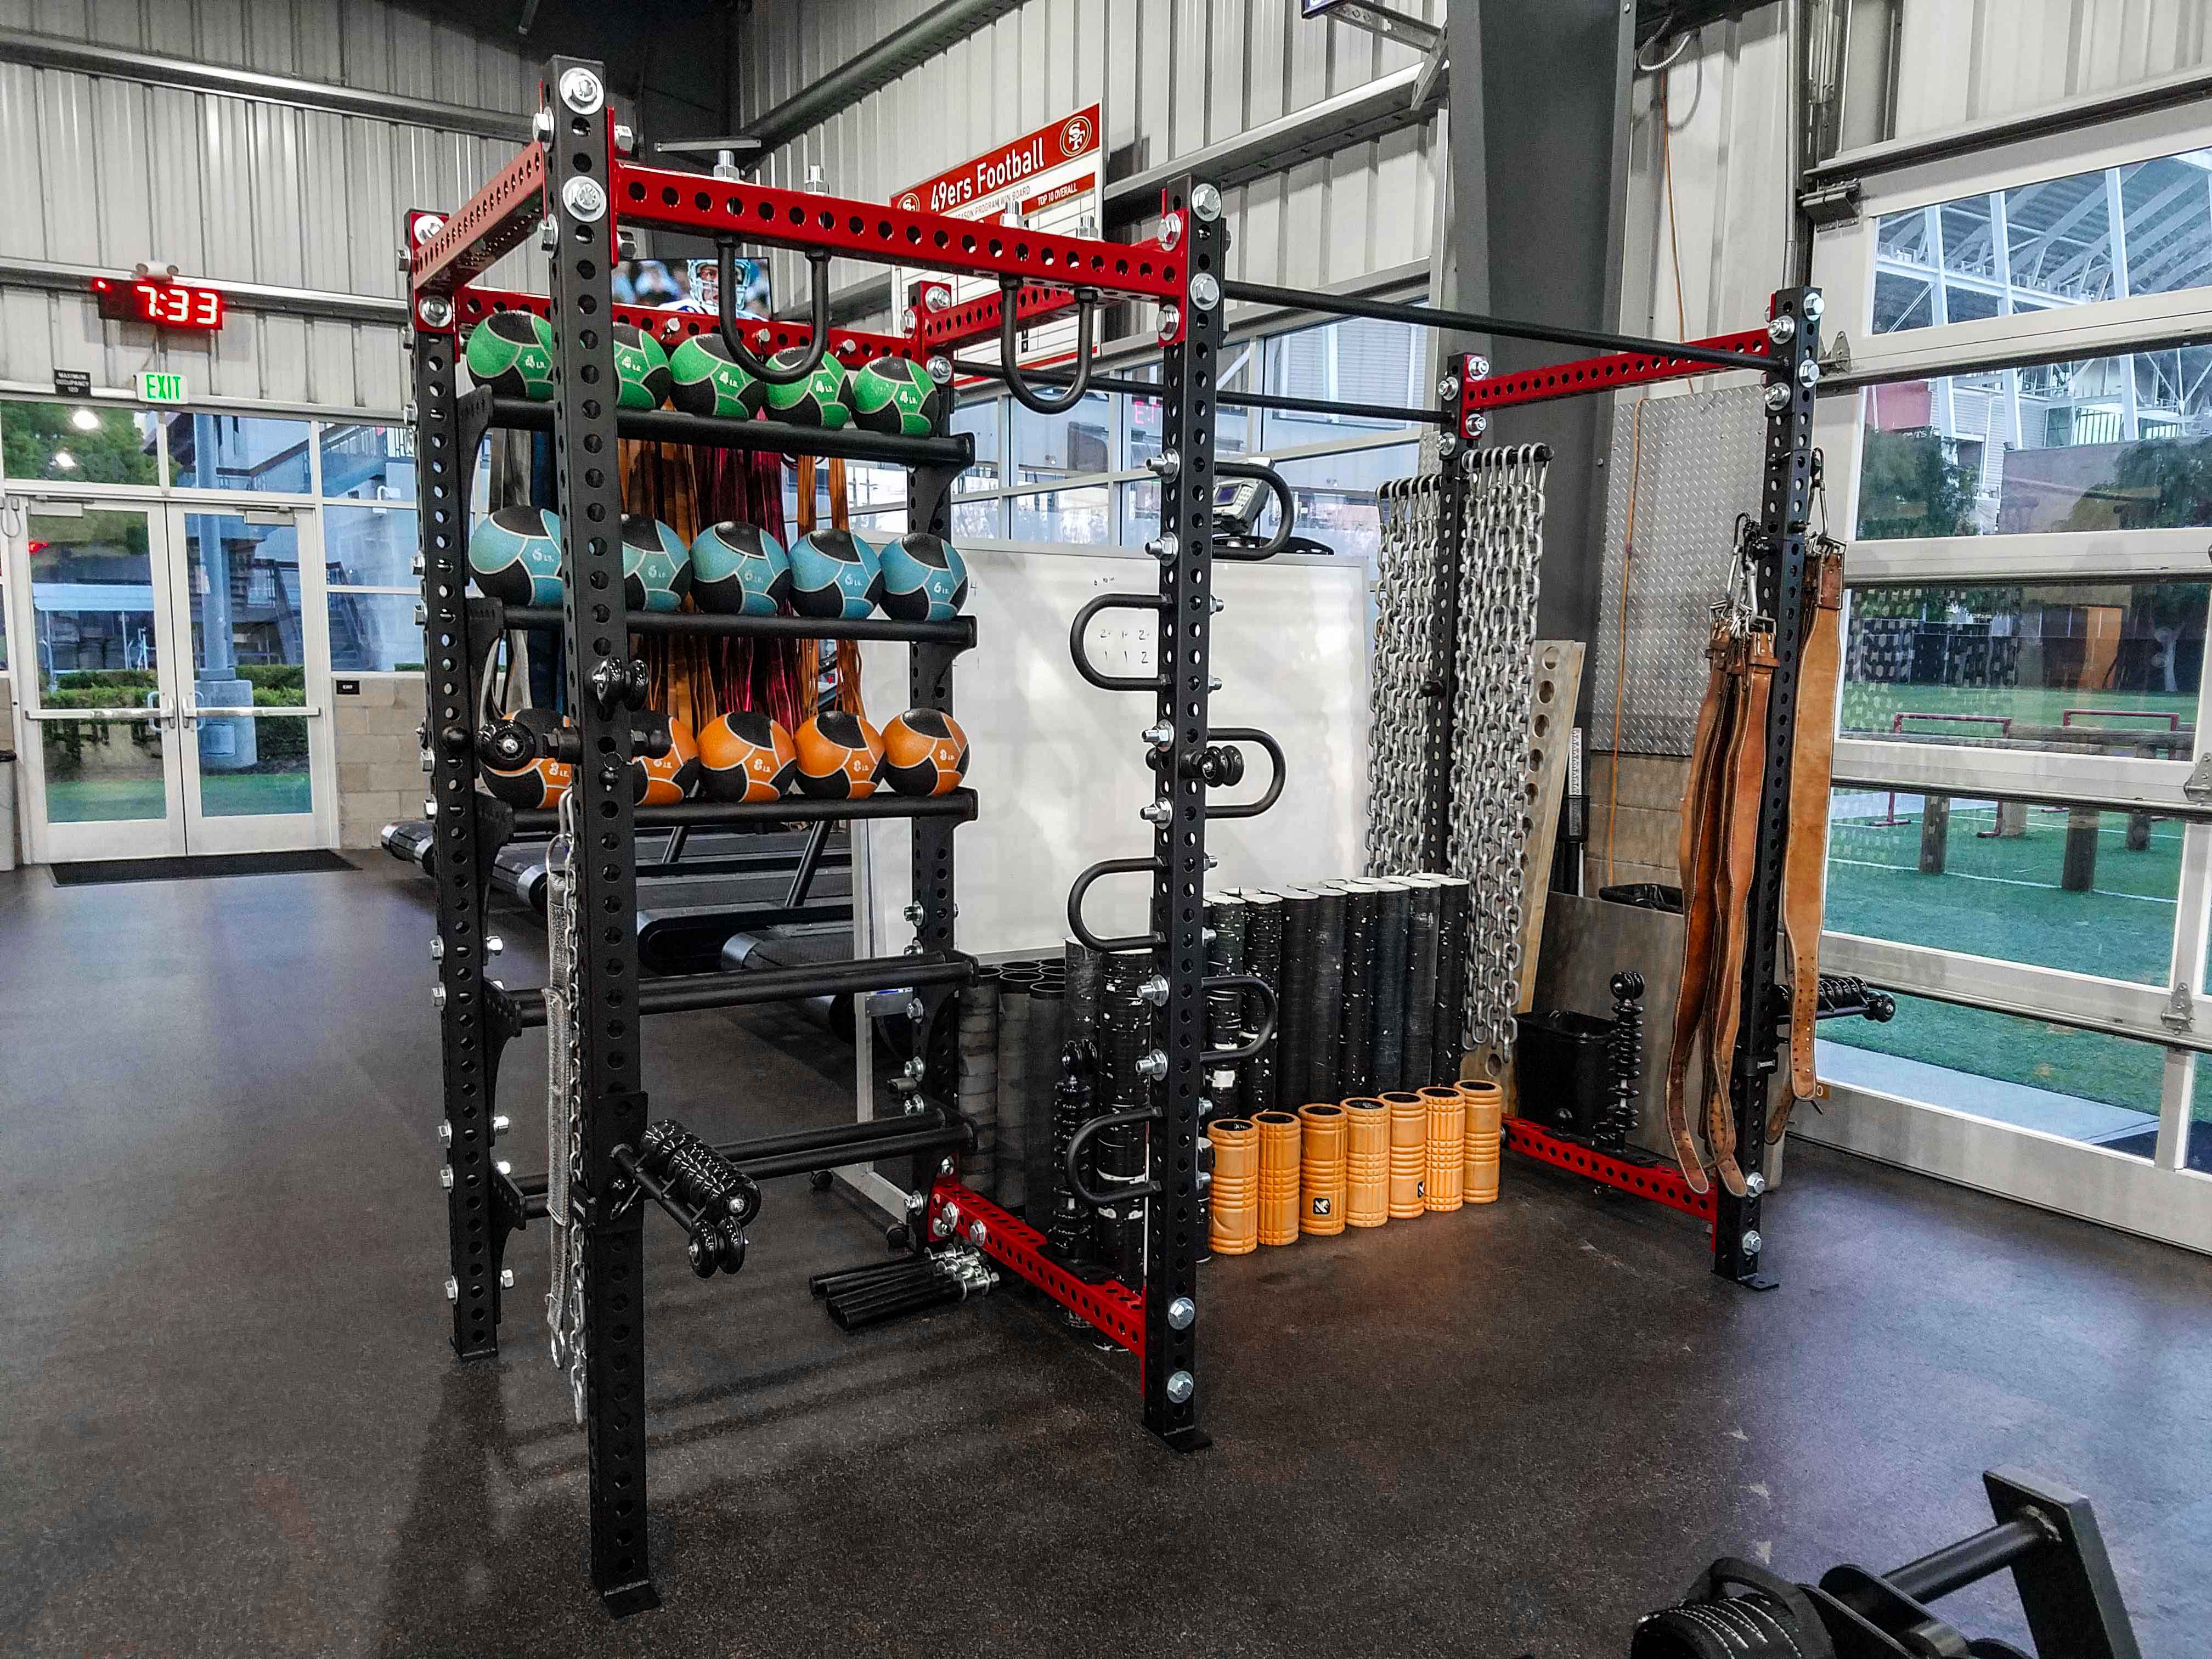 49ers Recovery Rack